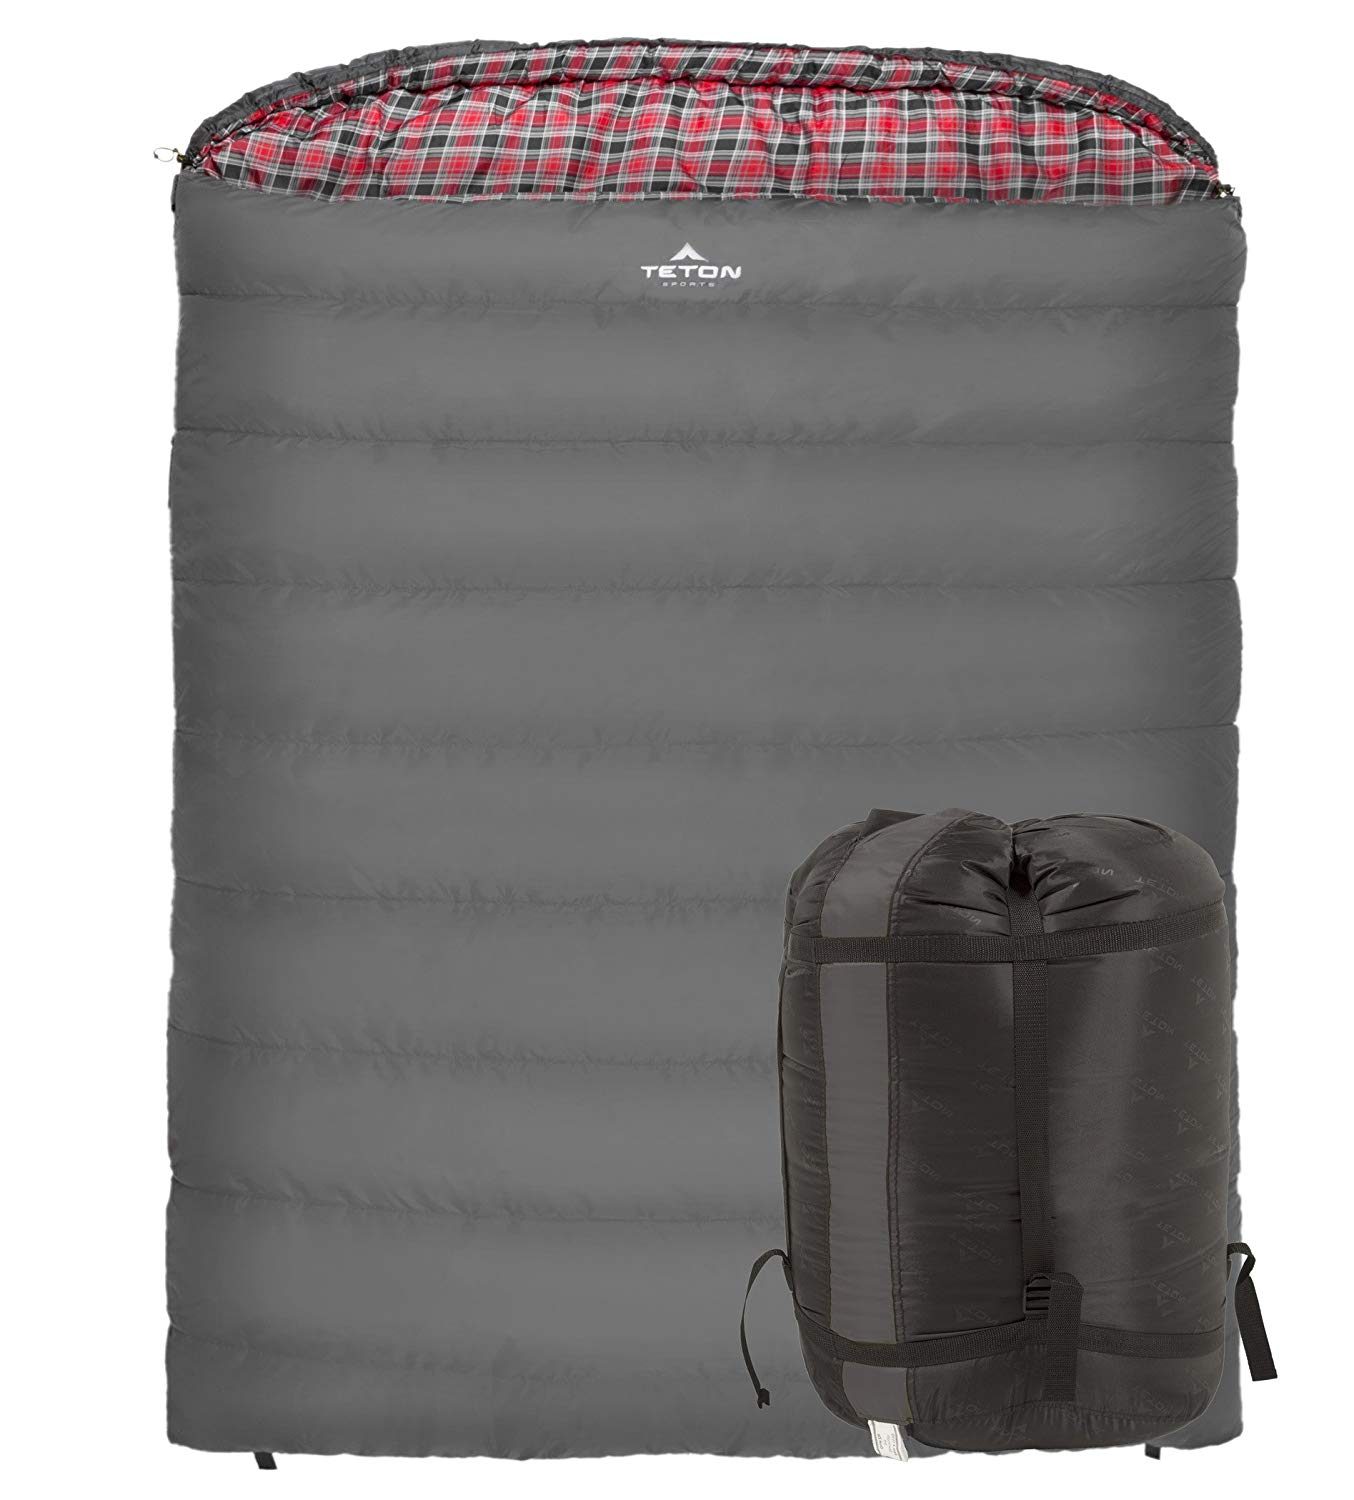 An image related to Teton 110 Mammoth Gray 7 Ft. 10 in. Couple Poly-Flannel Mummy Camping Thermal Sleeping Bag